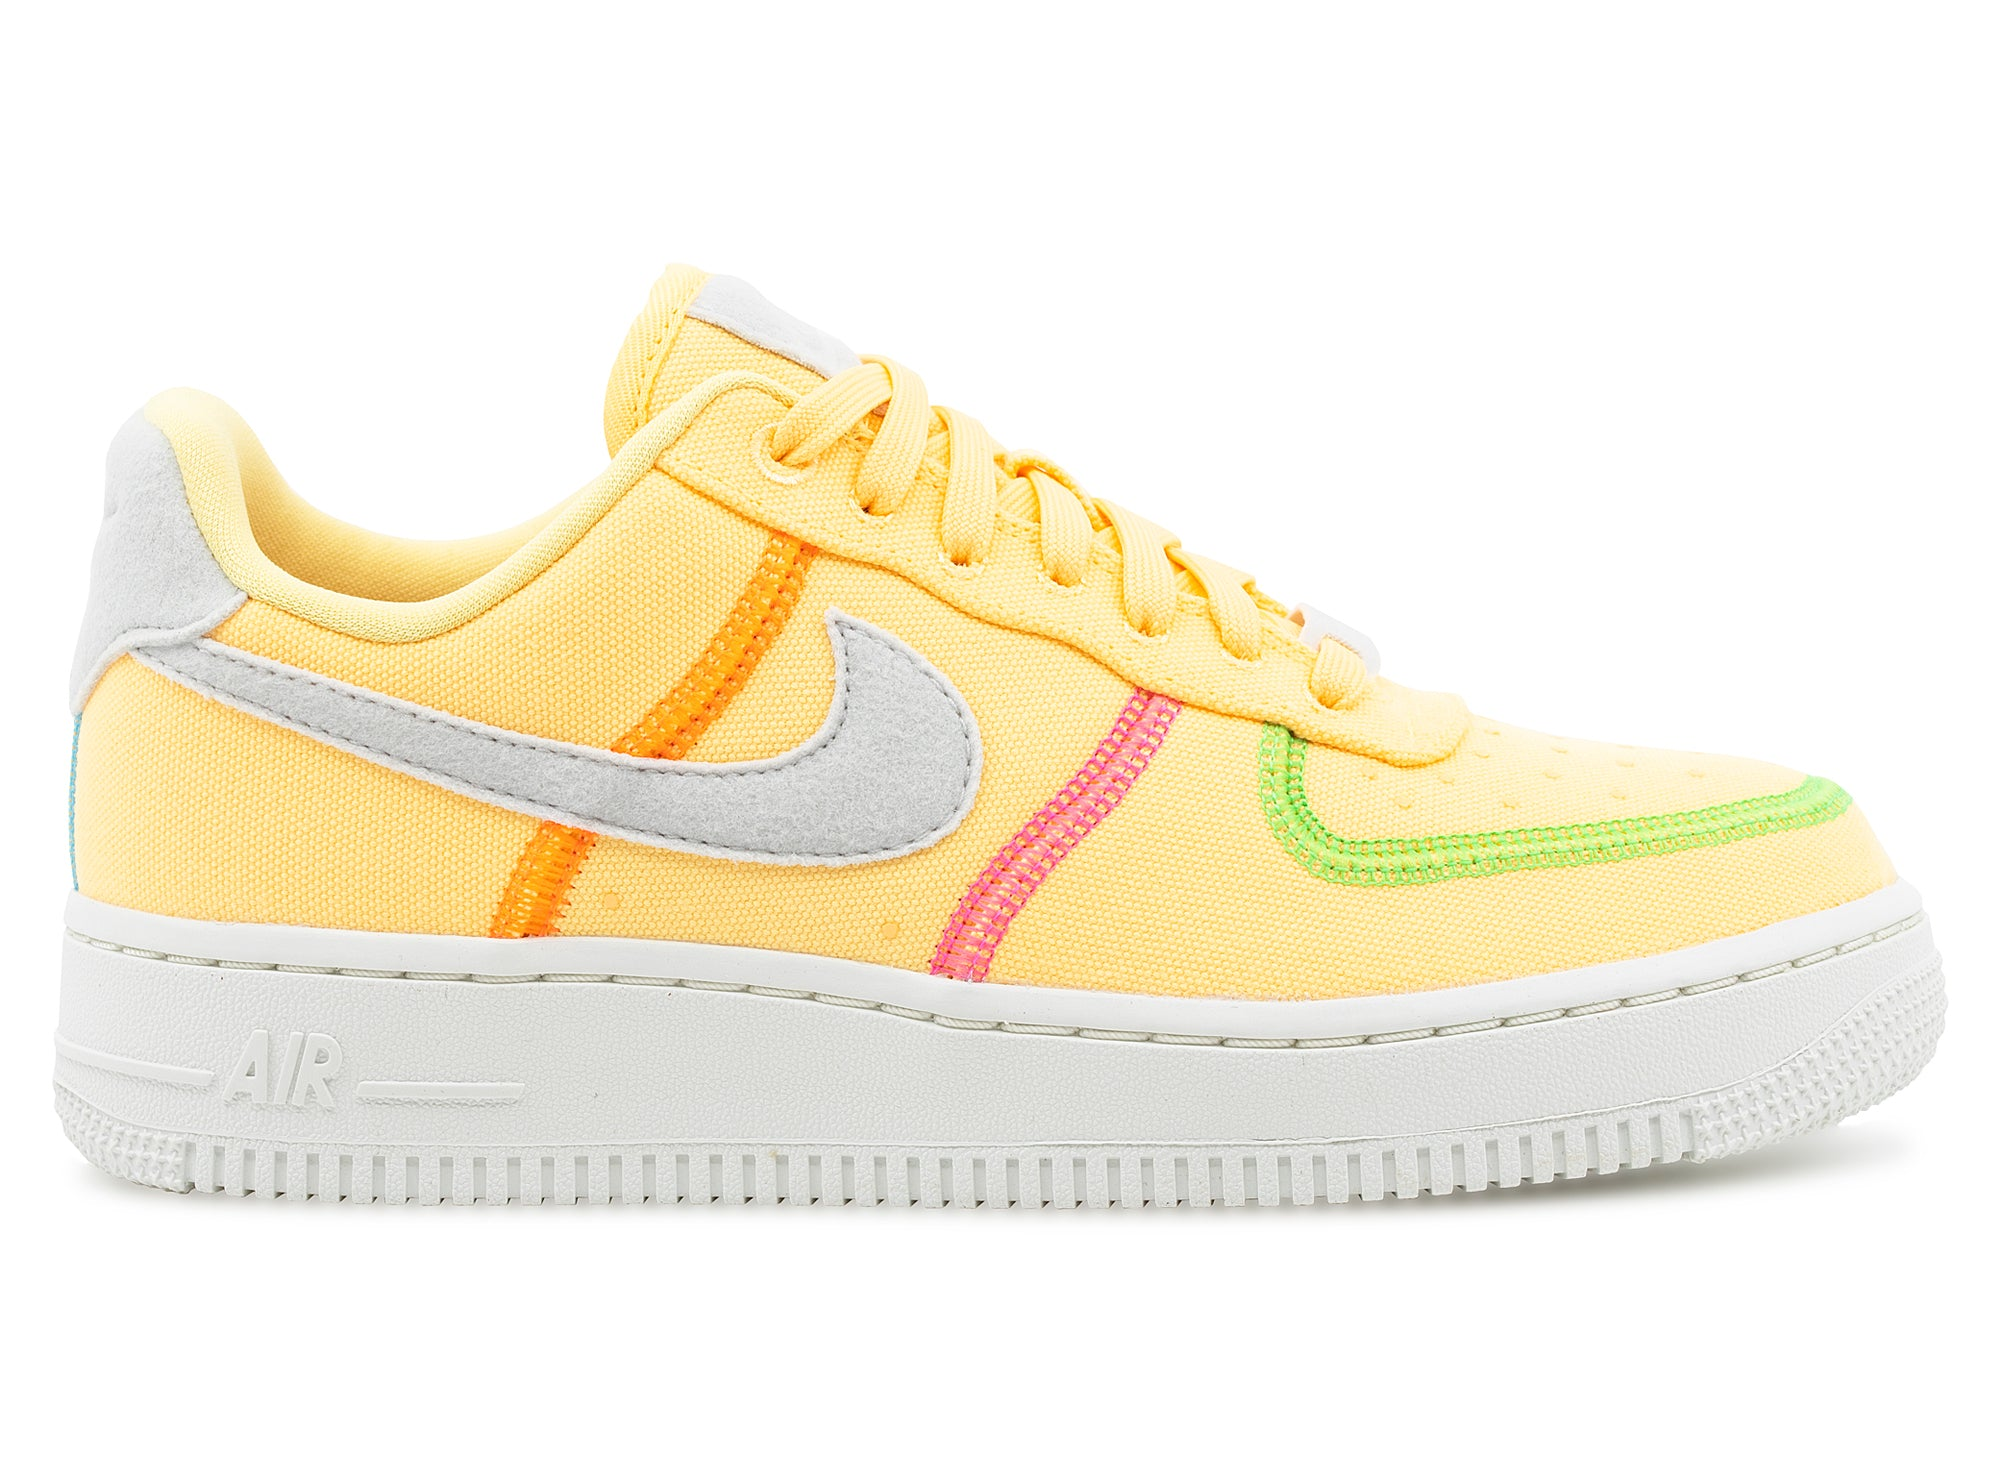 Women's Air Force 1 '07 LX 'Melon Tint'